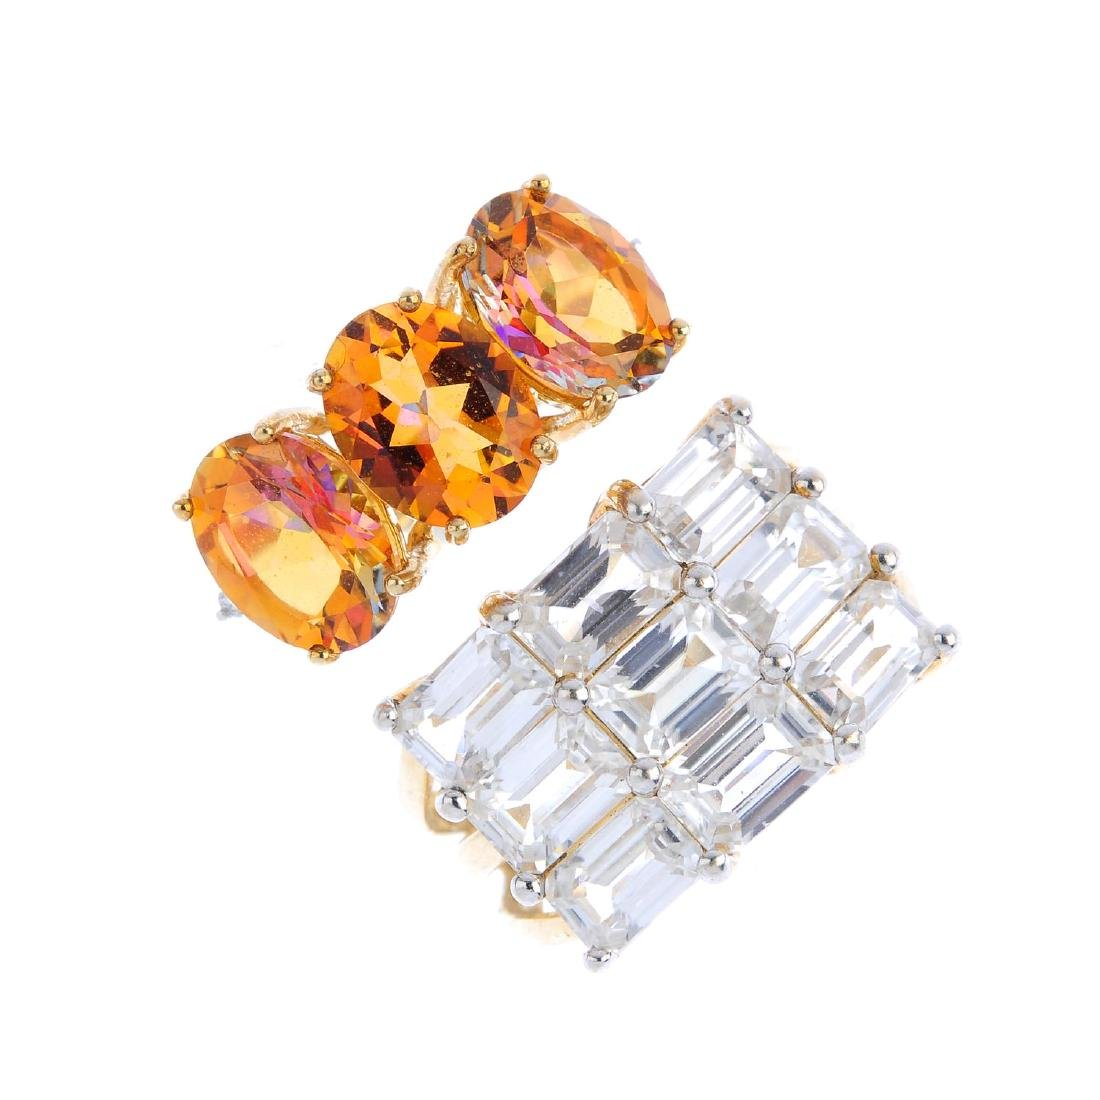 Two 9ct gold gem-set dress rings. The first, an